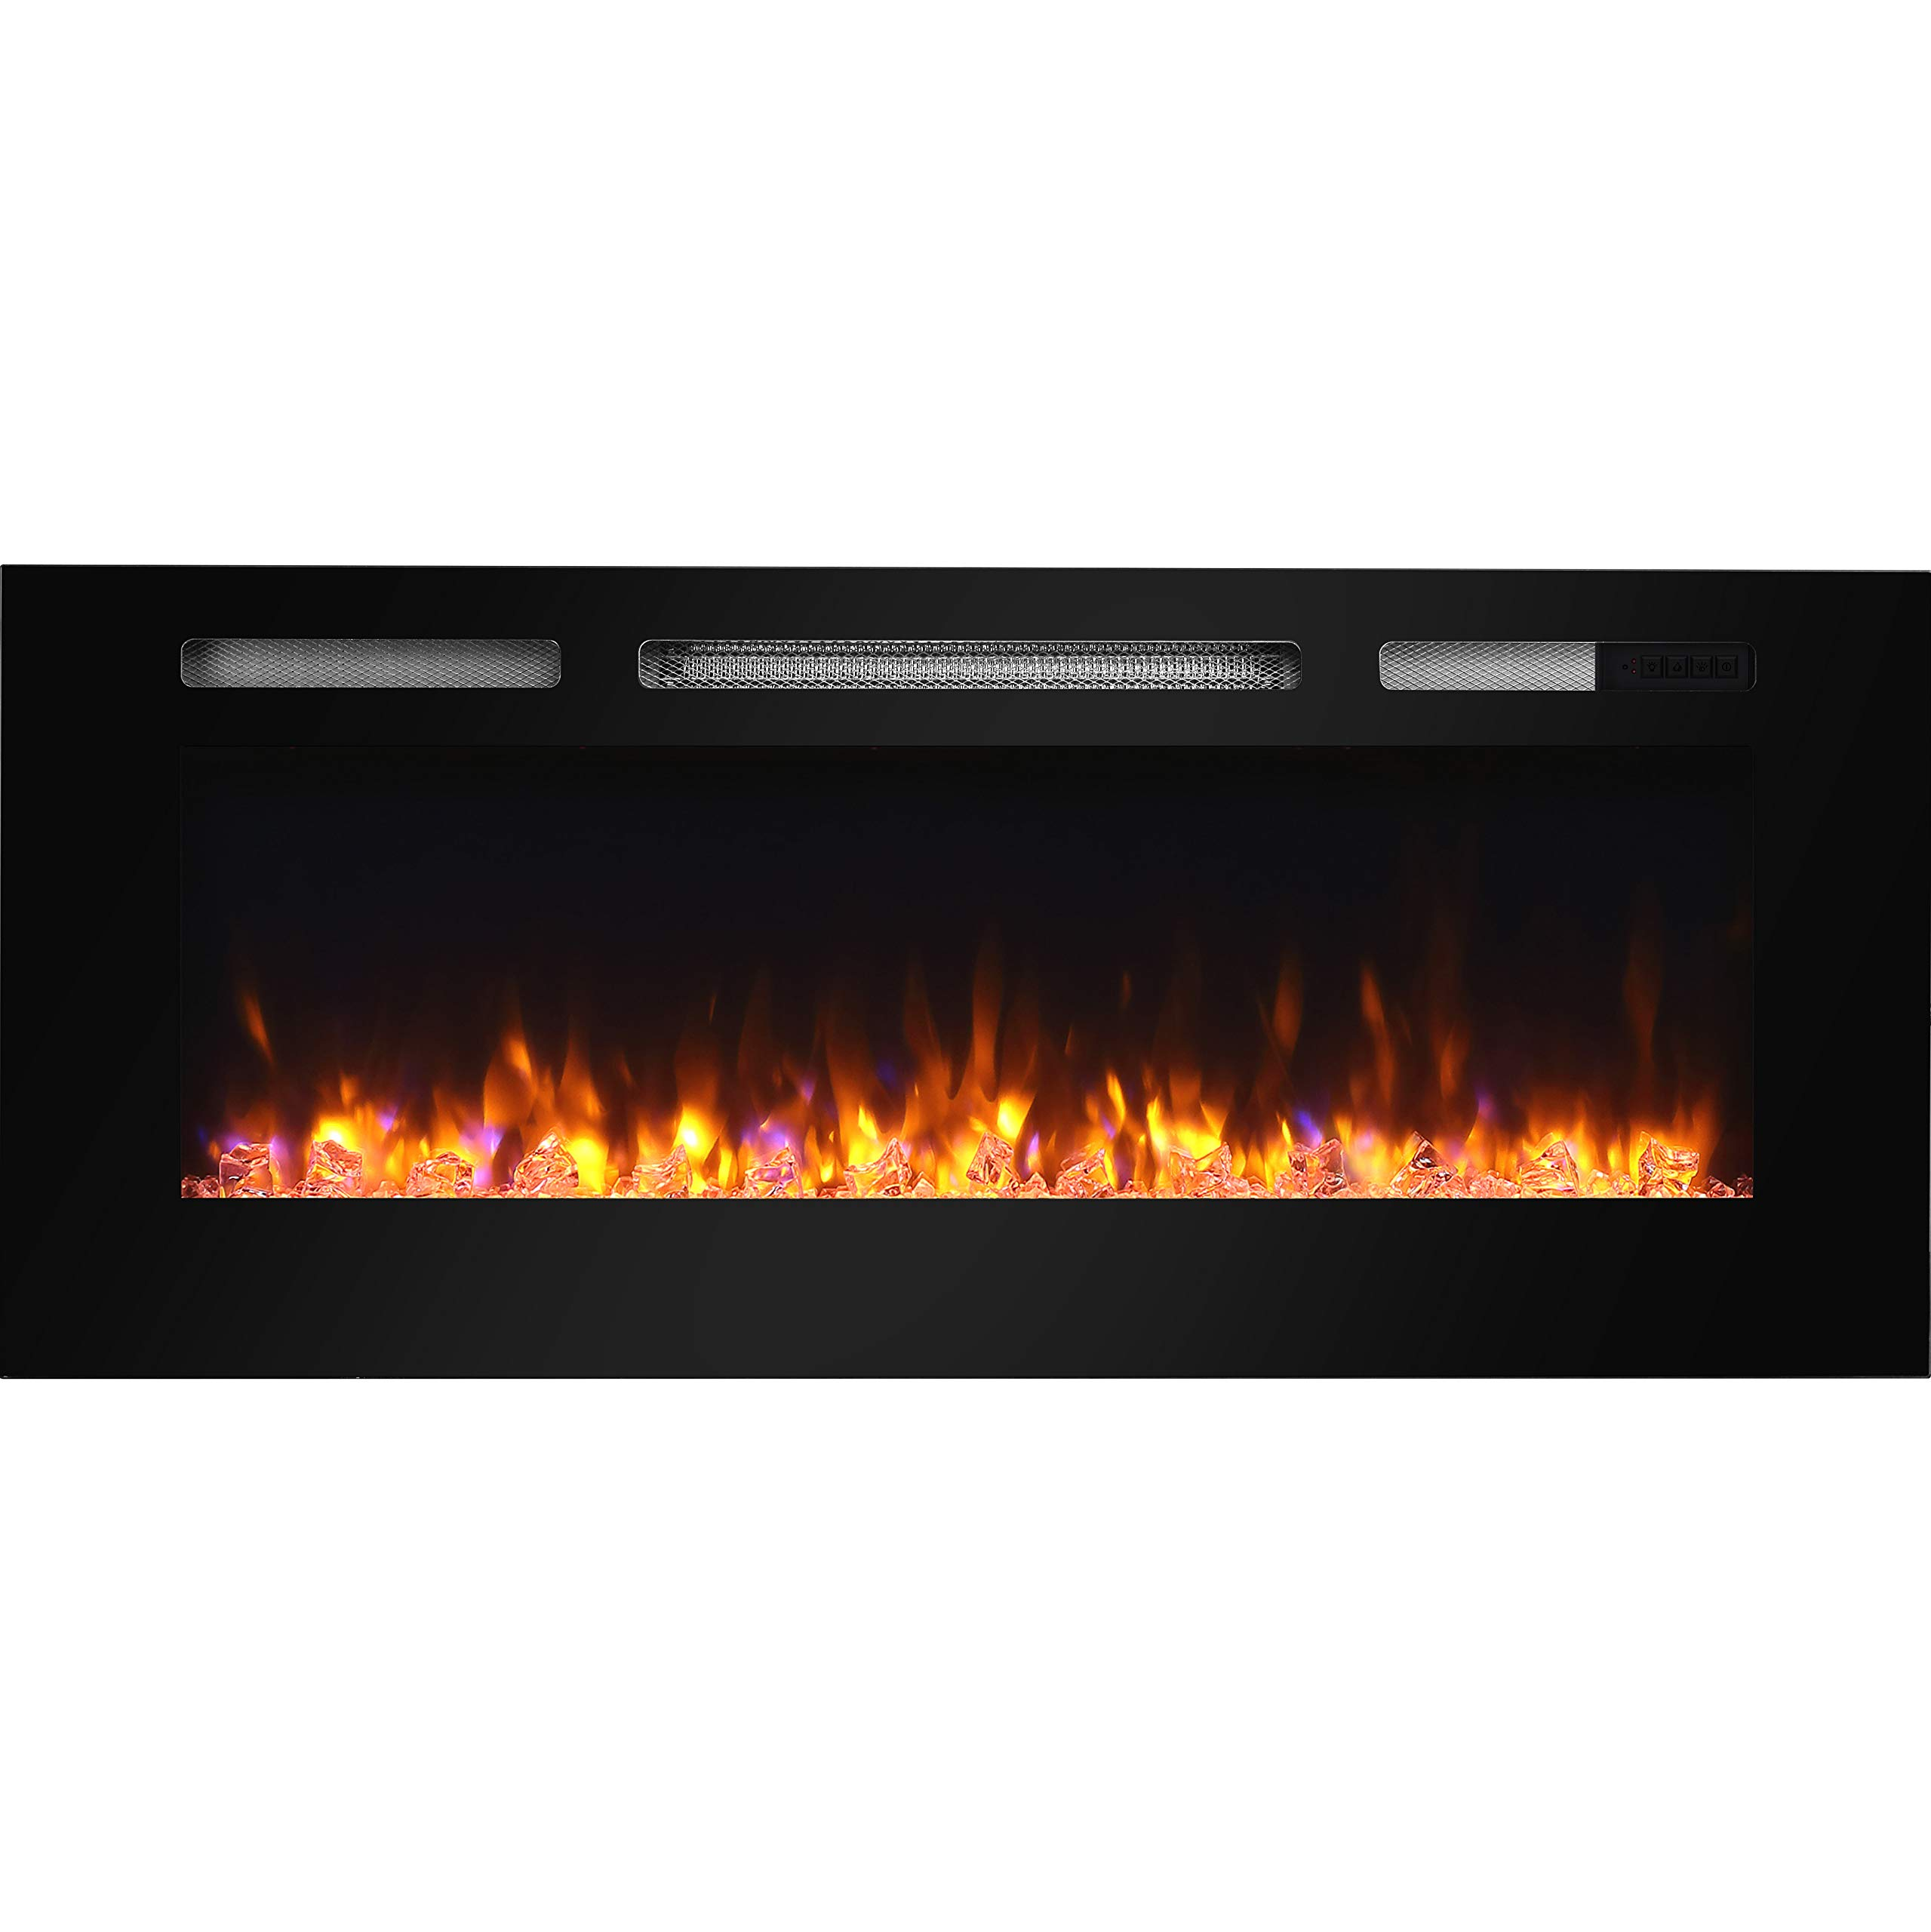 "Hawnby Recessed Electric Fire E141R 220/240Vac, 1&2kW, Log Set & Crystal, 7 Day Programmable Remote Control (48"")"